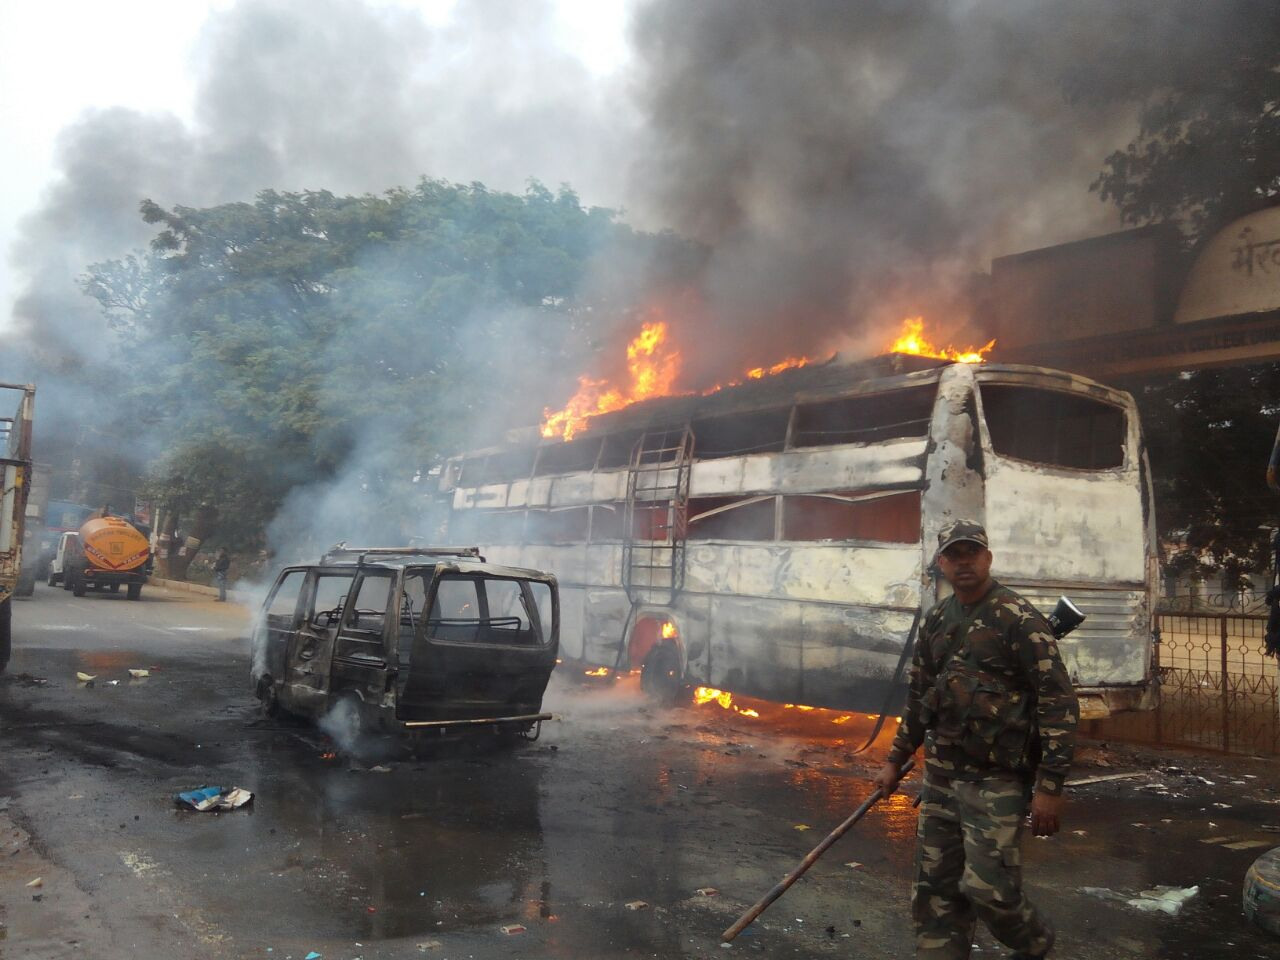 Protestors set fire to vehicles in Dumka. Image credit: Manob Chowdhury